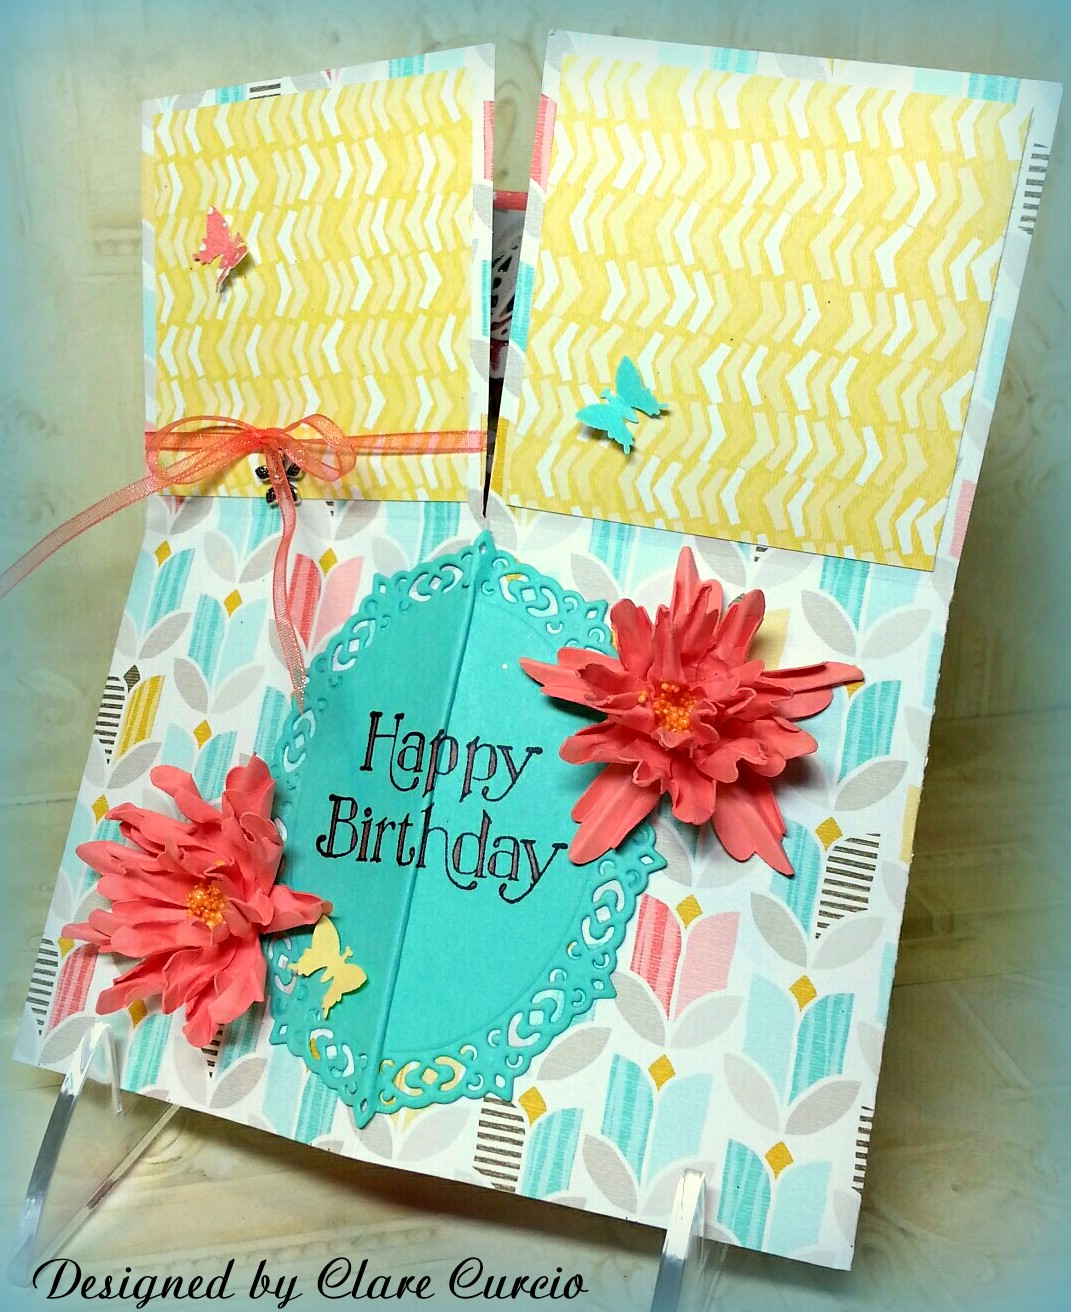 Clare's Paper Works: Happy Birthday Pop-up Box Card